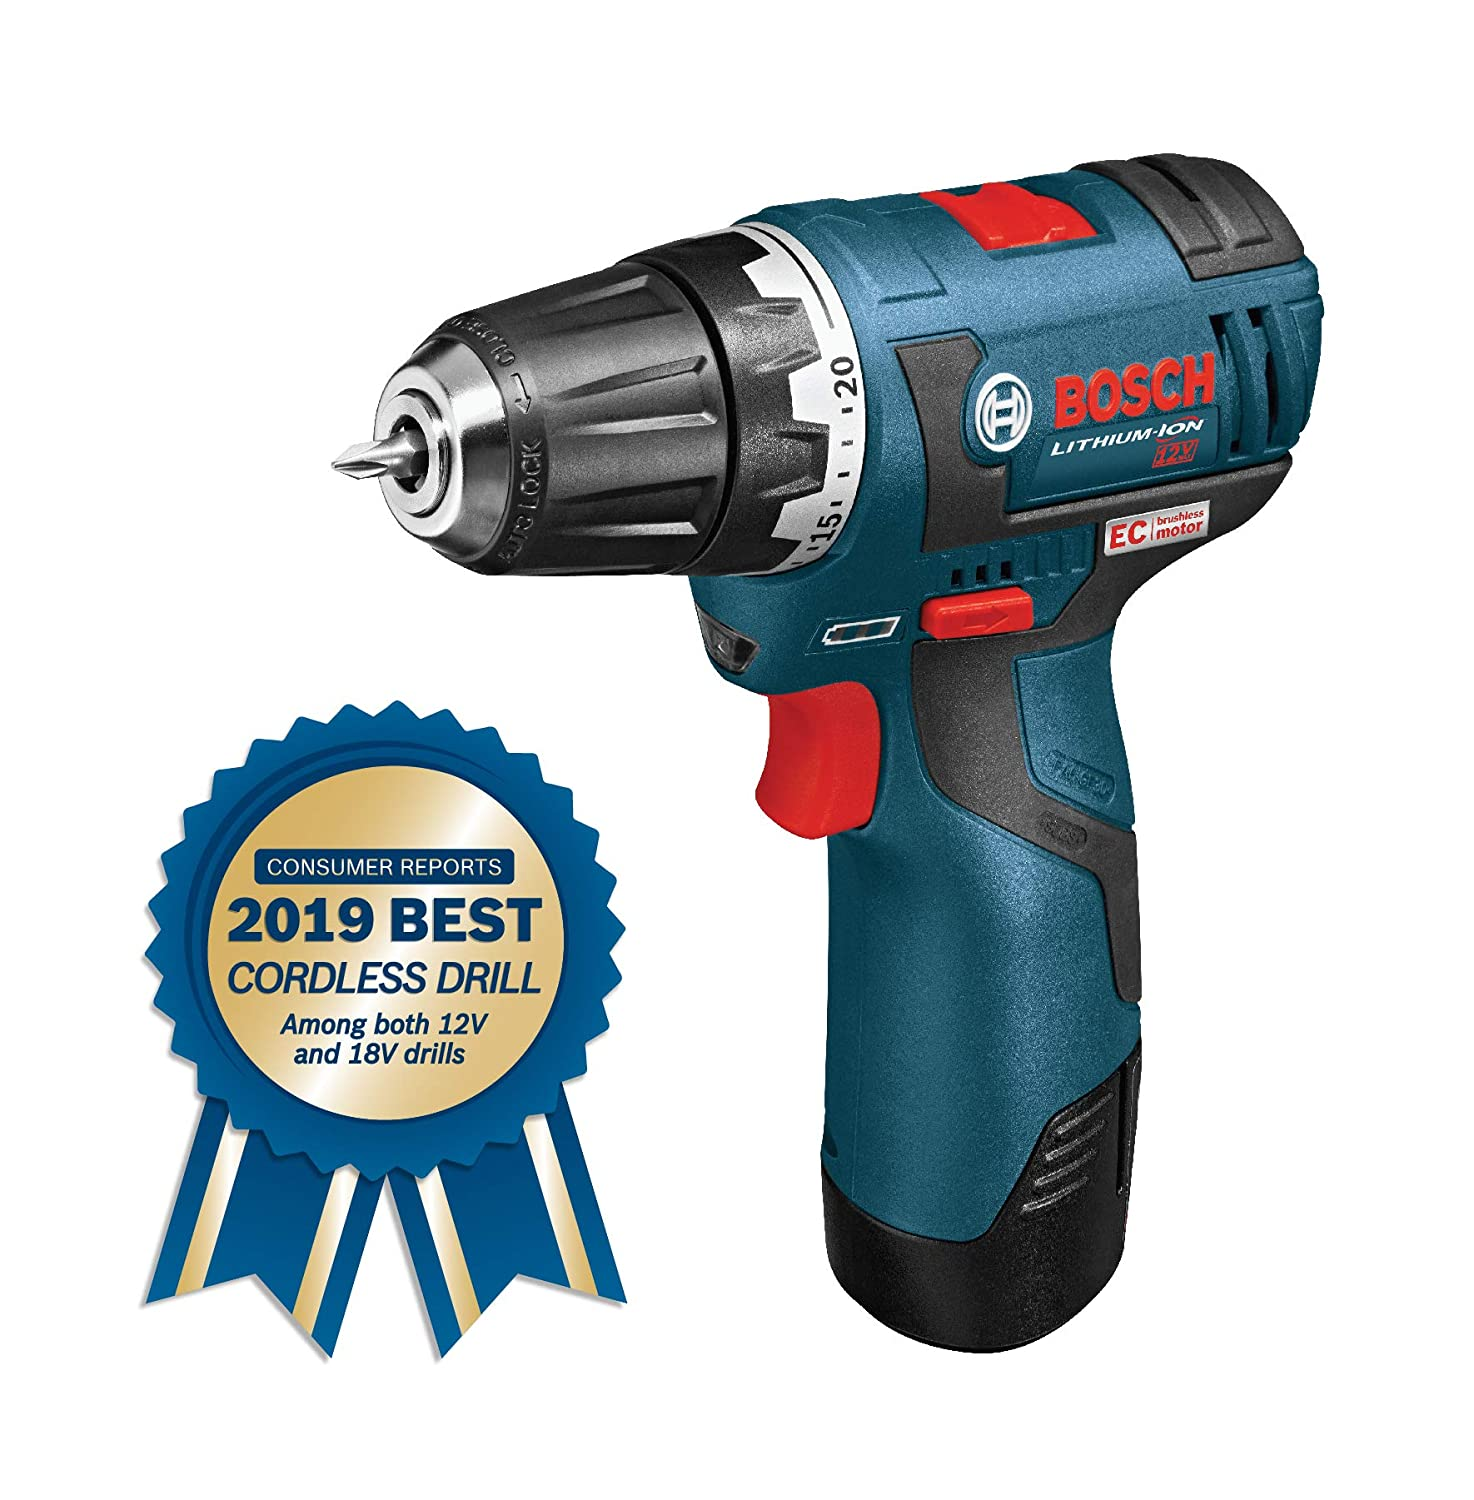 Bosch PS32-02 Cordless Drill Driver – 12V Brushless Compact Drill with 2 Lithium Ion Batteries, Charger Soft Carrying Case